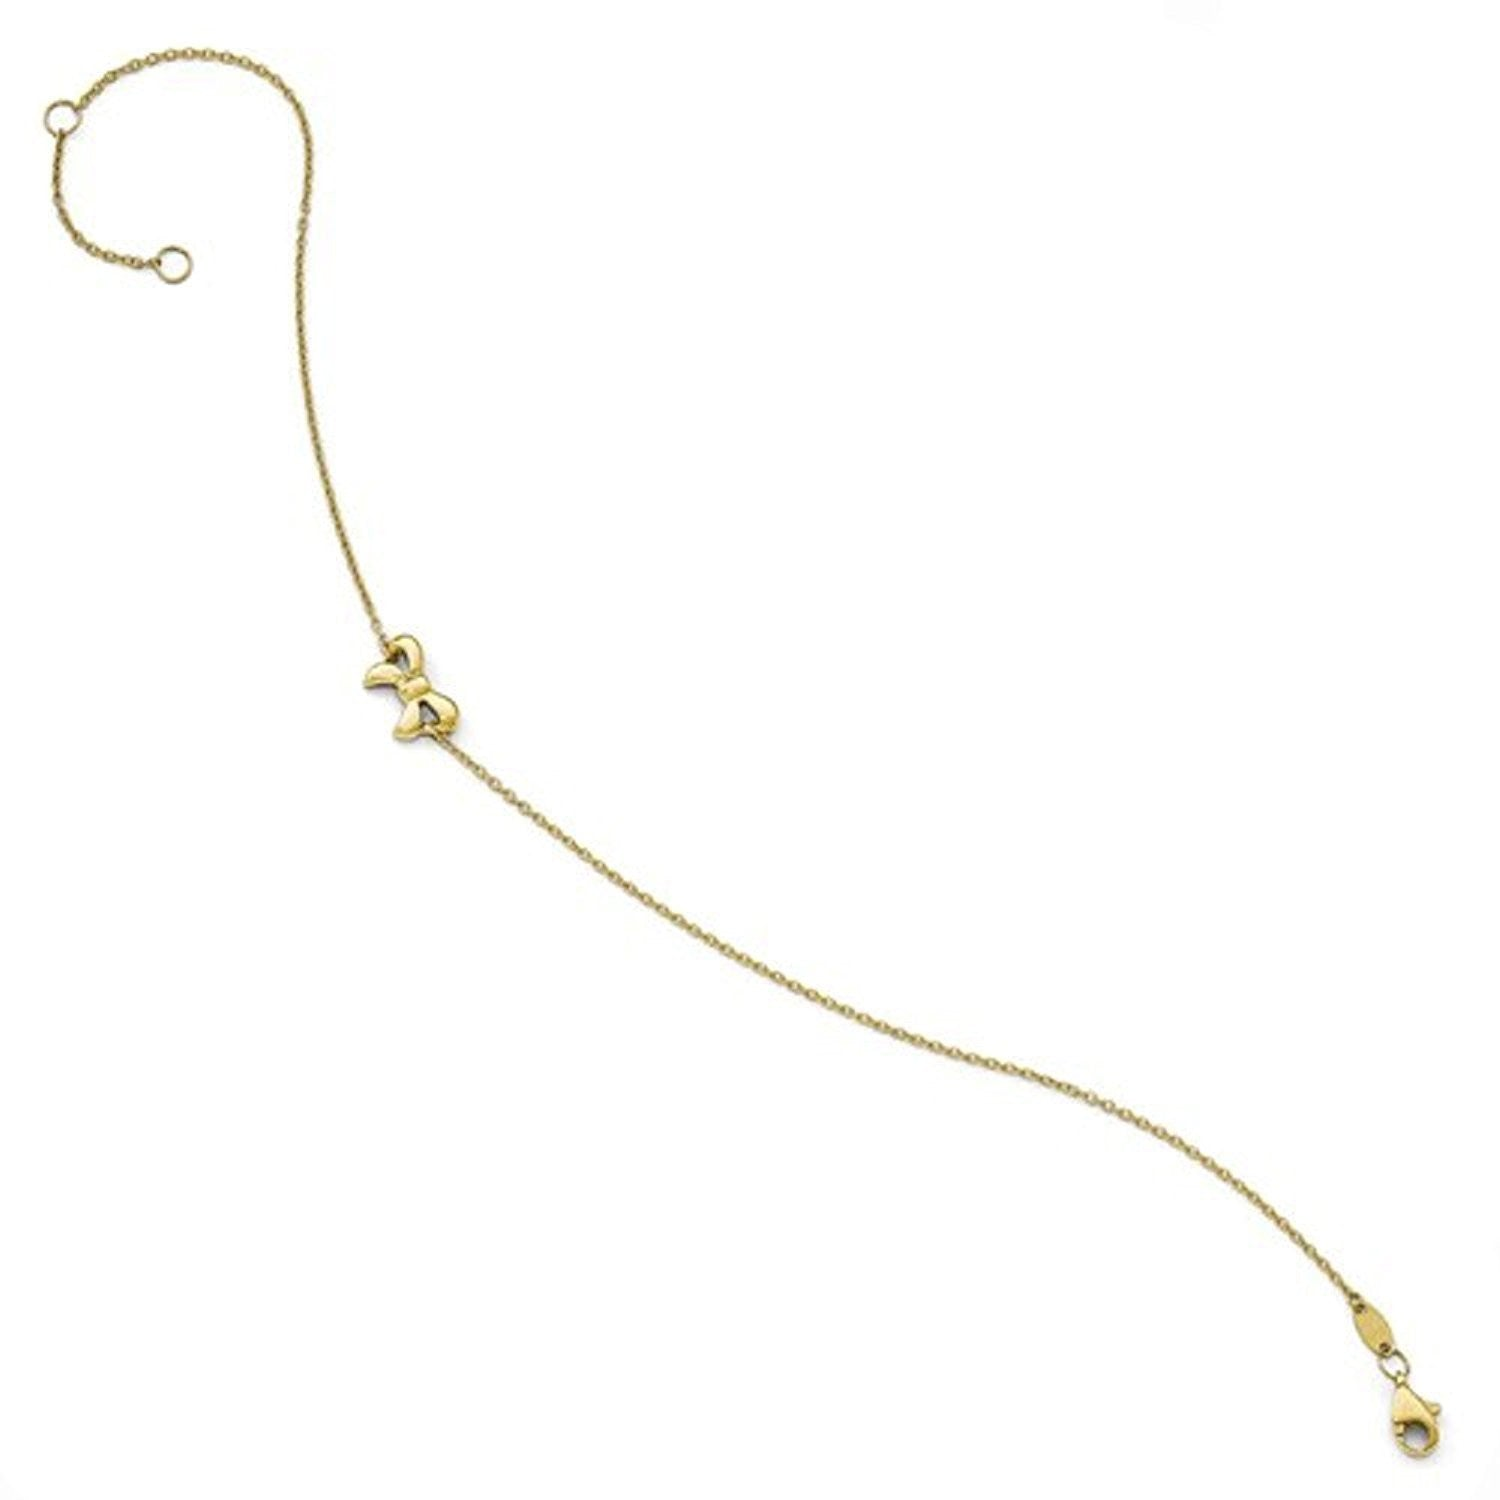 14k Yellow Gold Bow Ribbon Anklet 9 Inch with Extender